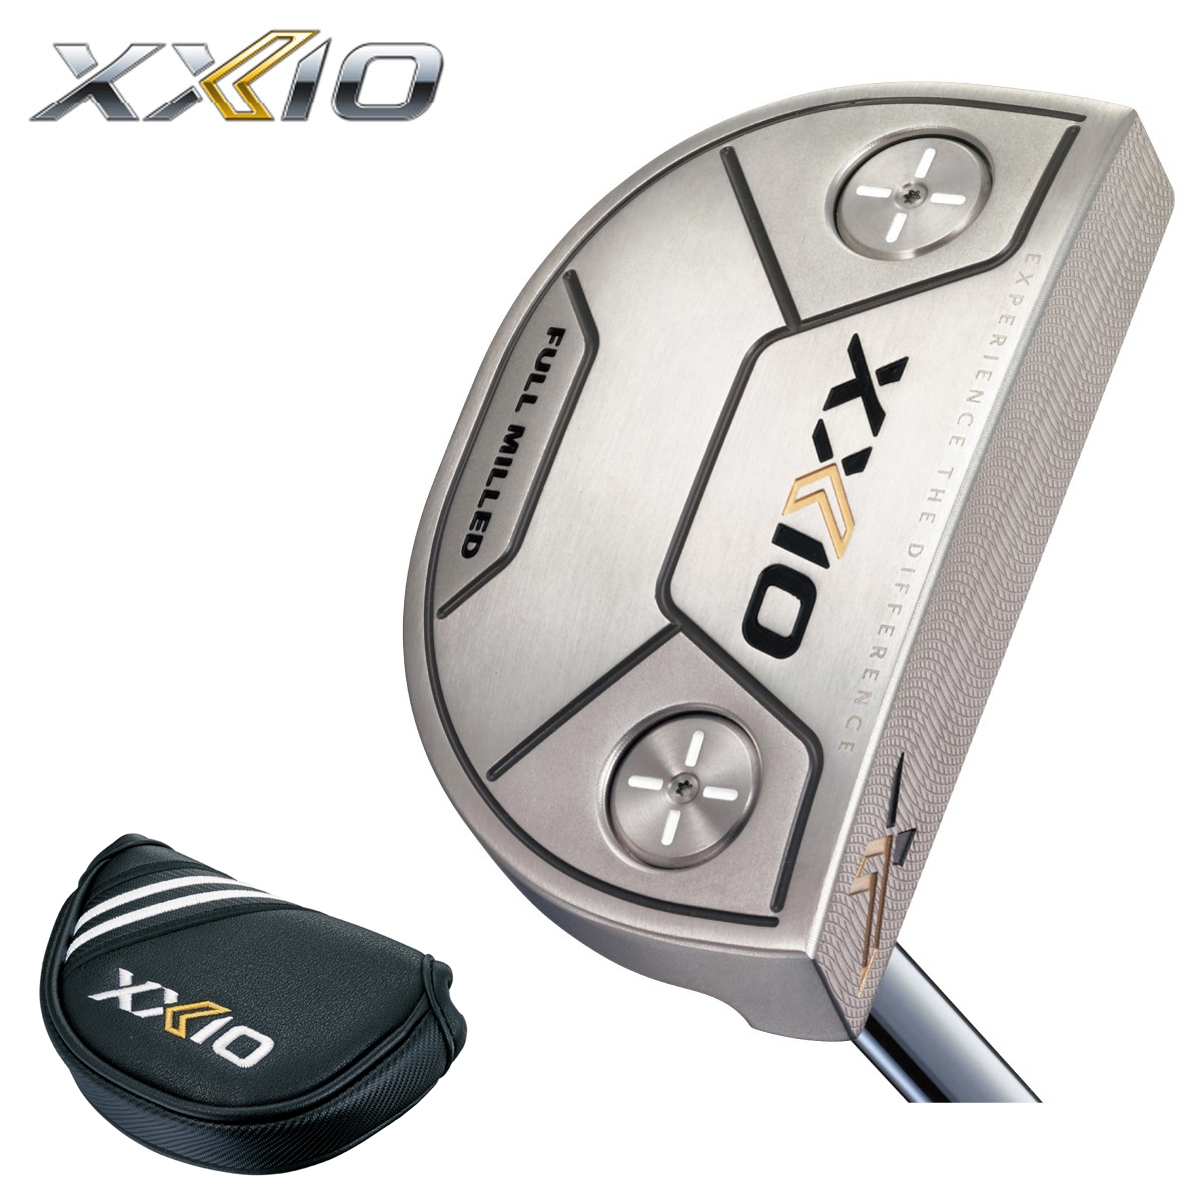 Gậy golf Putter XXIO Full Milled